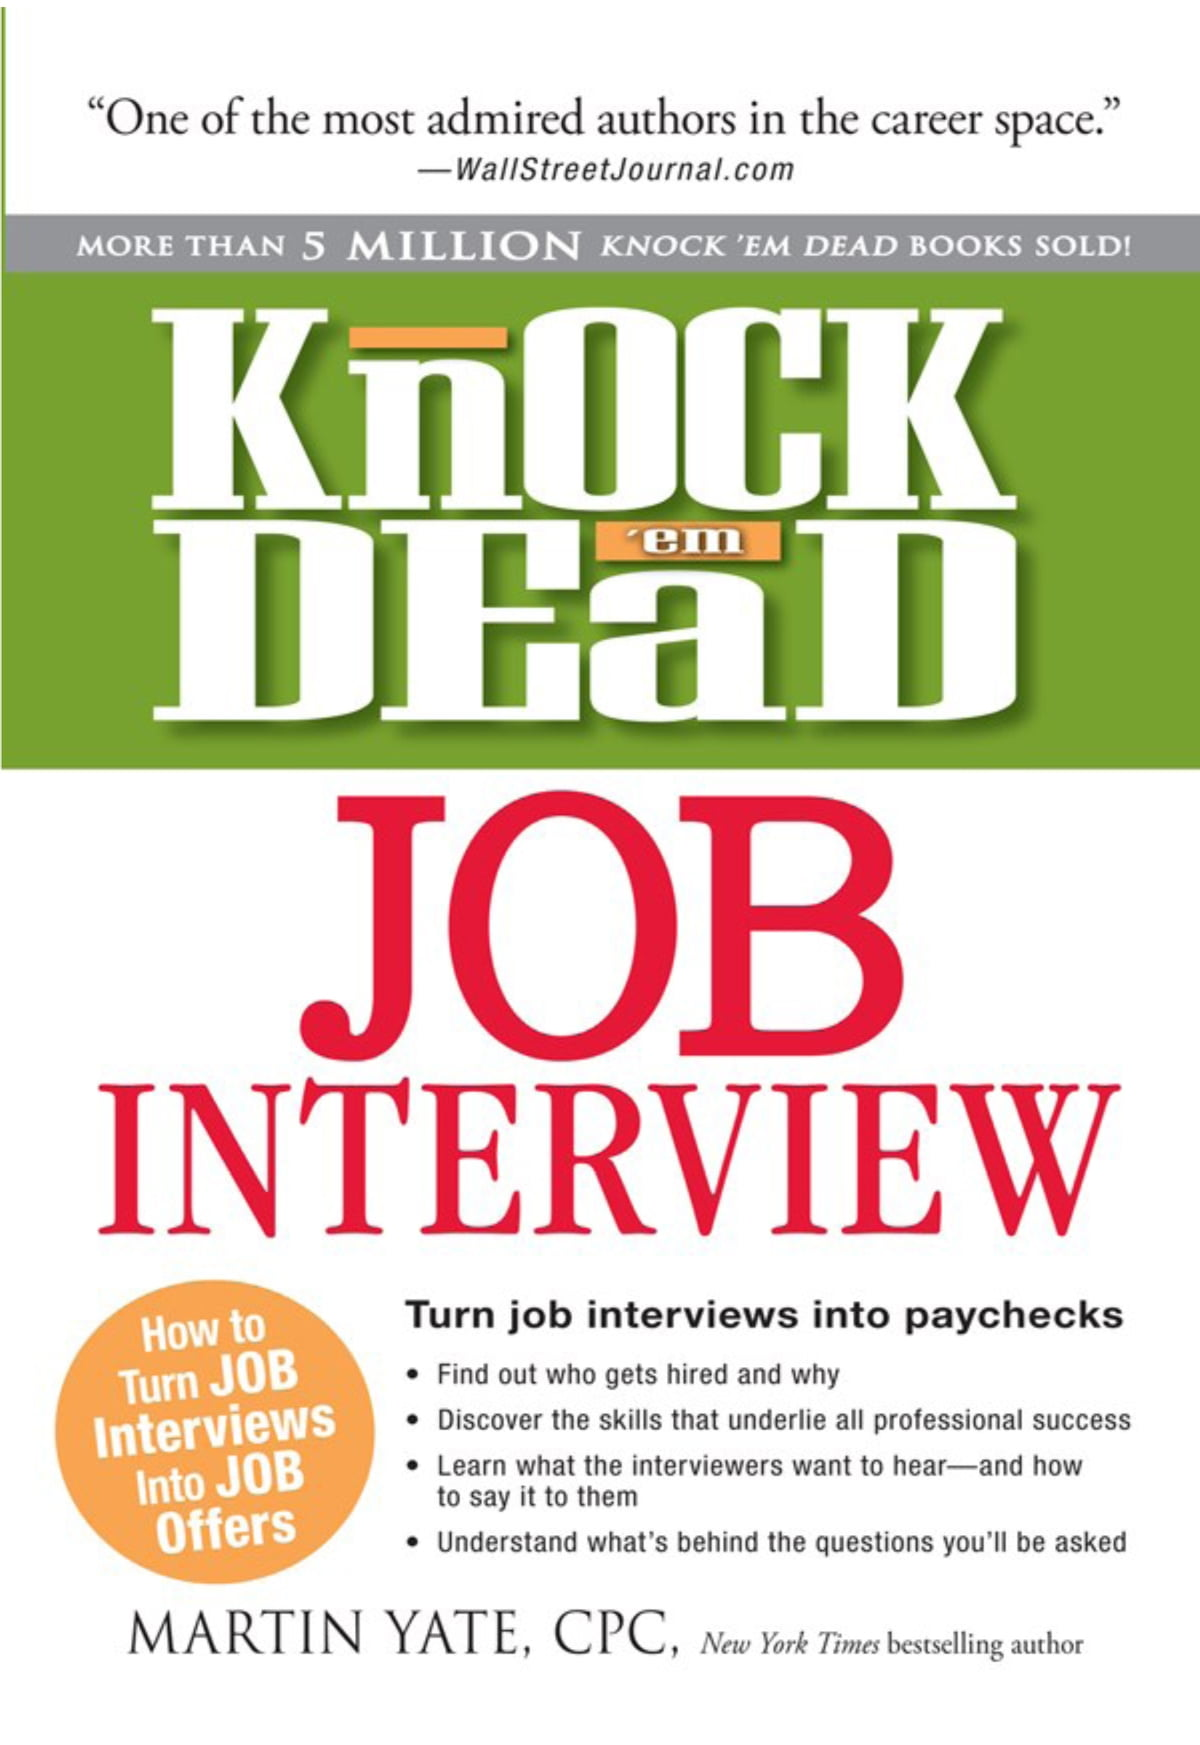 photo How to turn an interview into a job